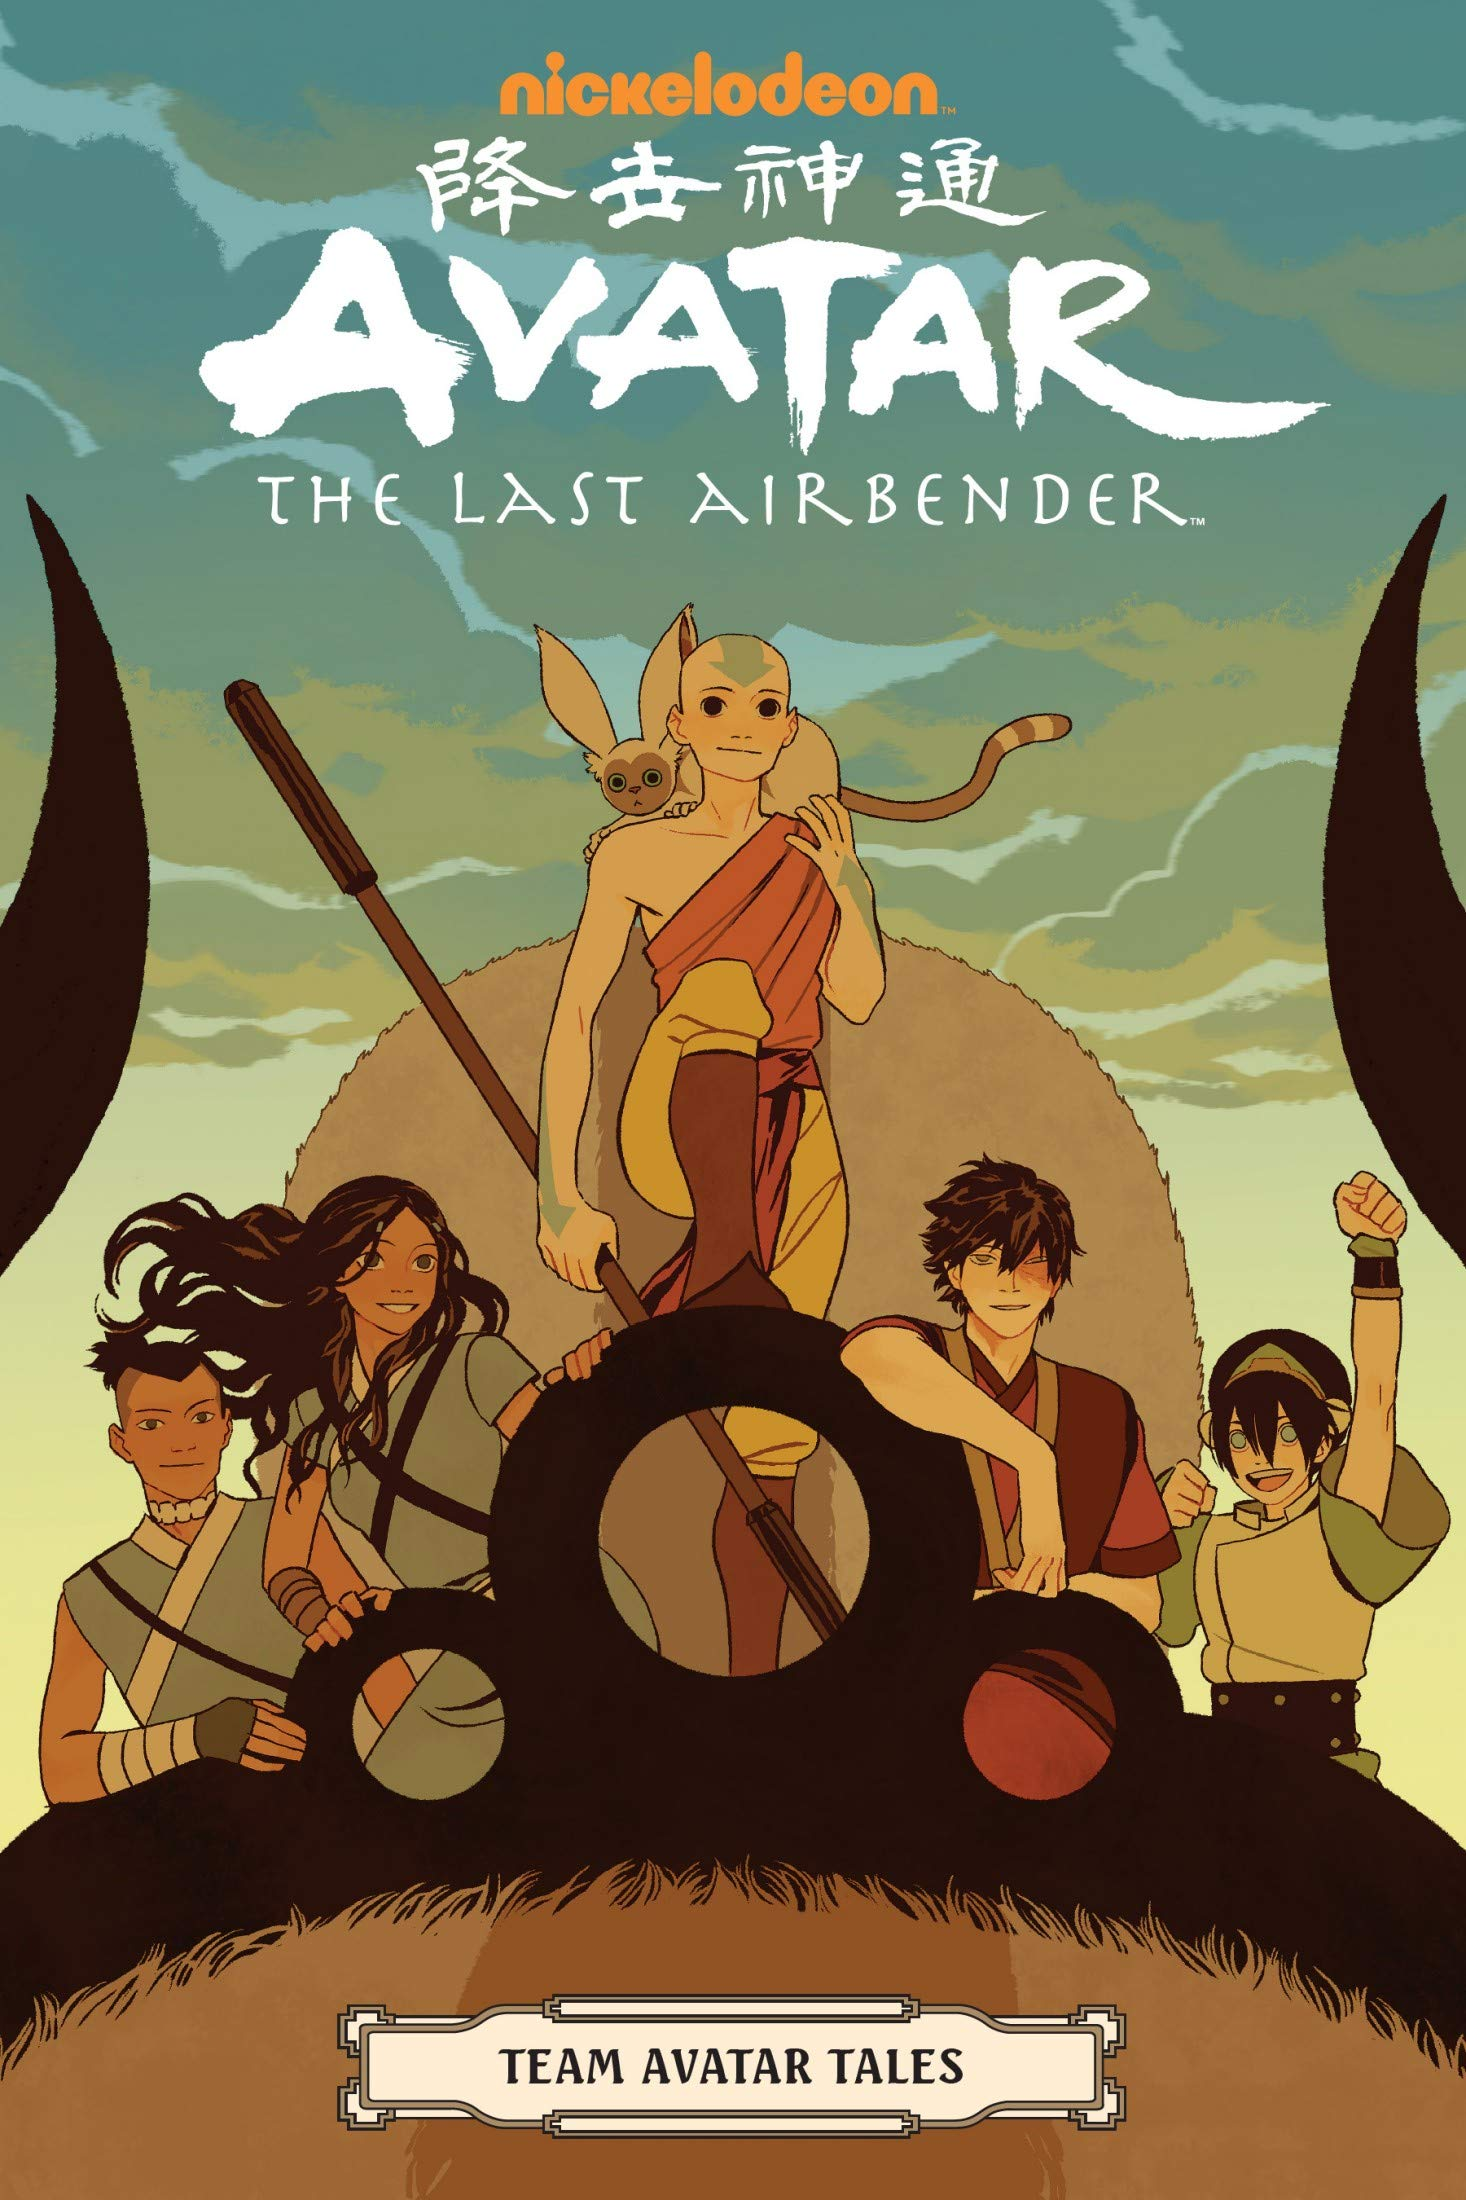 The Last: Airbender - Vol 2 Great Adventure Comic Avatar Graphic Novels For Young & Teens , Adults